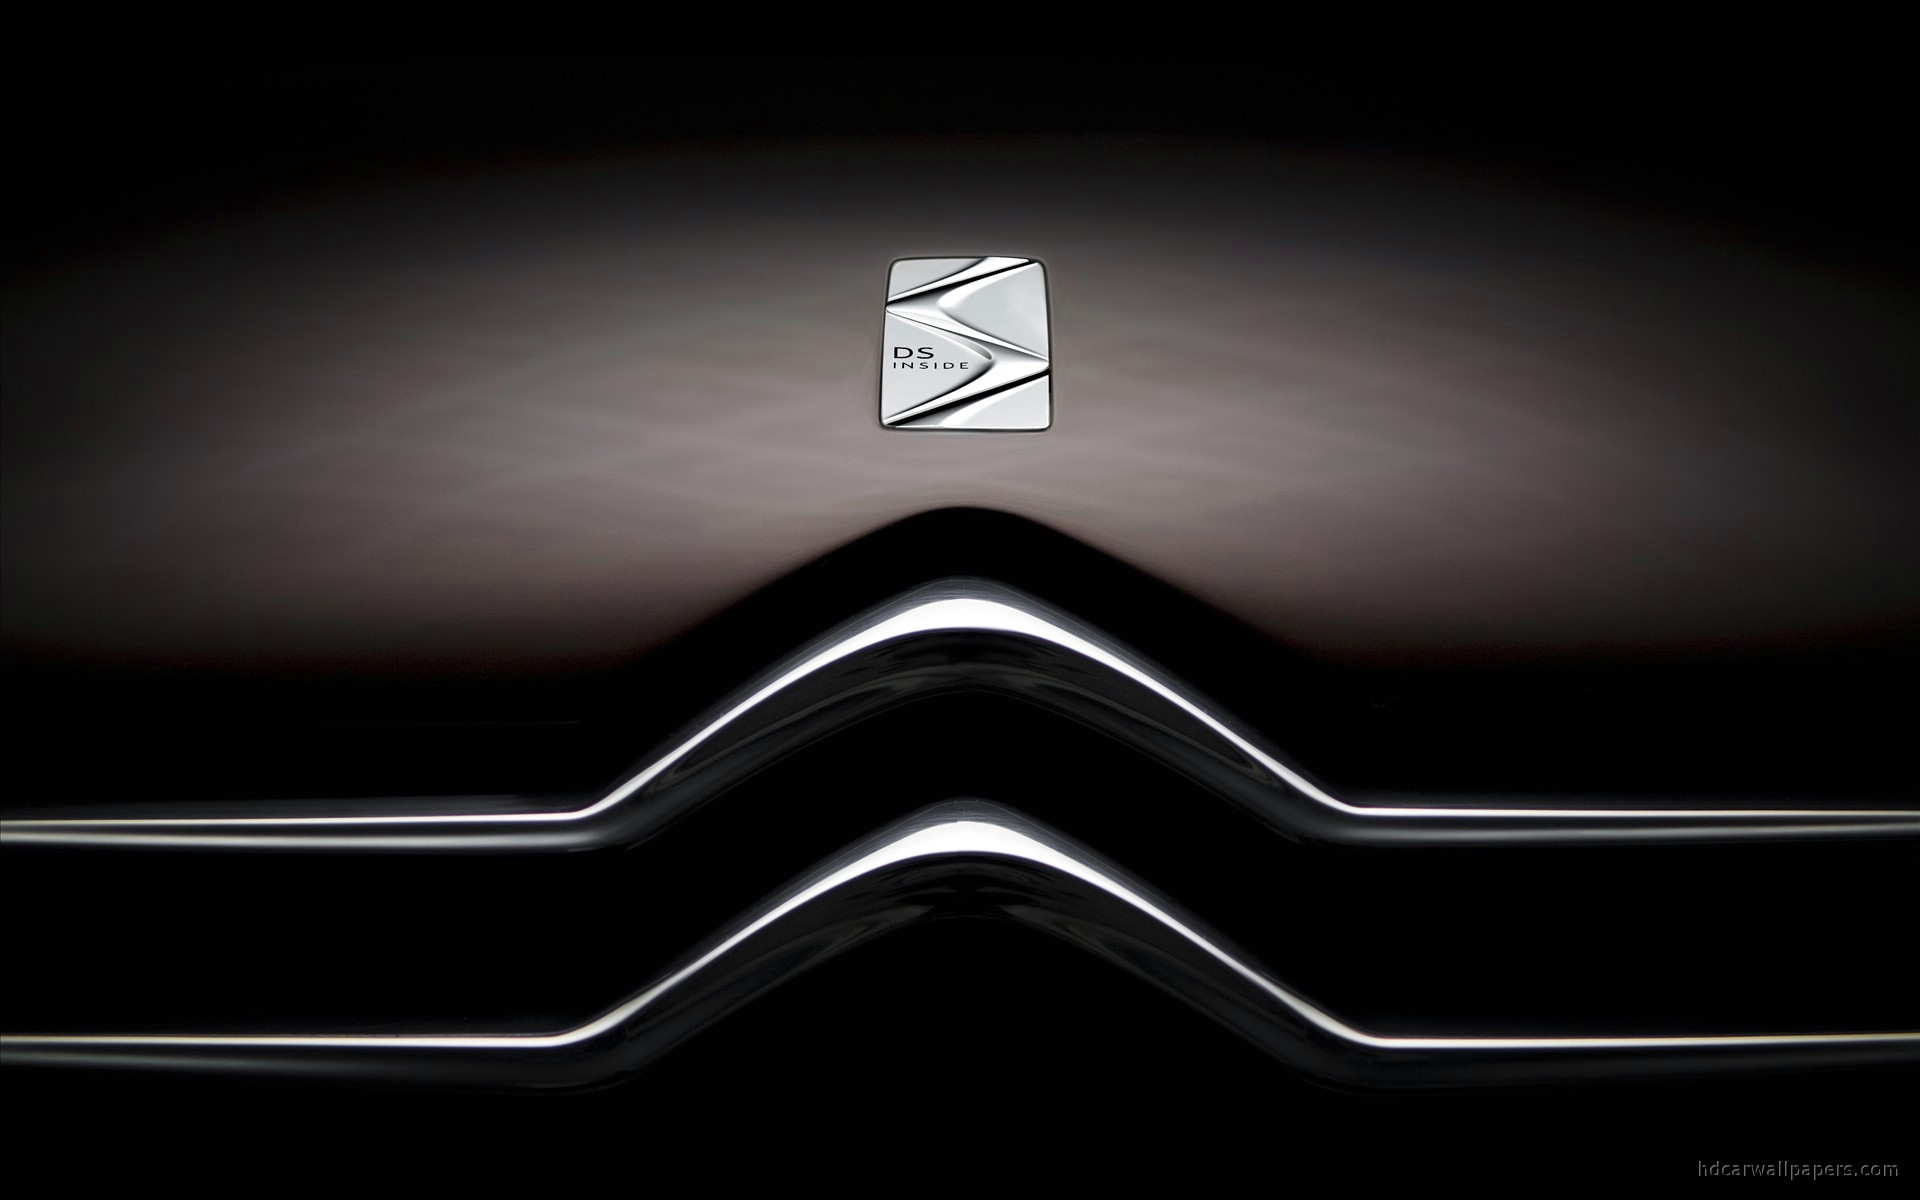 citroen-ds-inside-logo-Citroen-Ds-Inside-Logo-Pictures-Car-Hd-intended-for-wallpaper-wp3403915